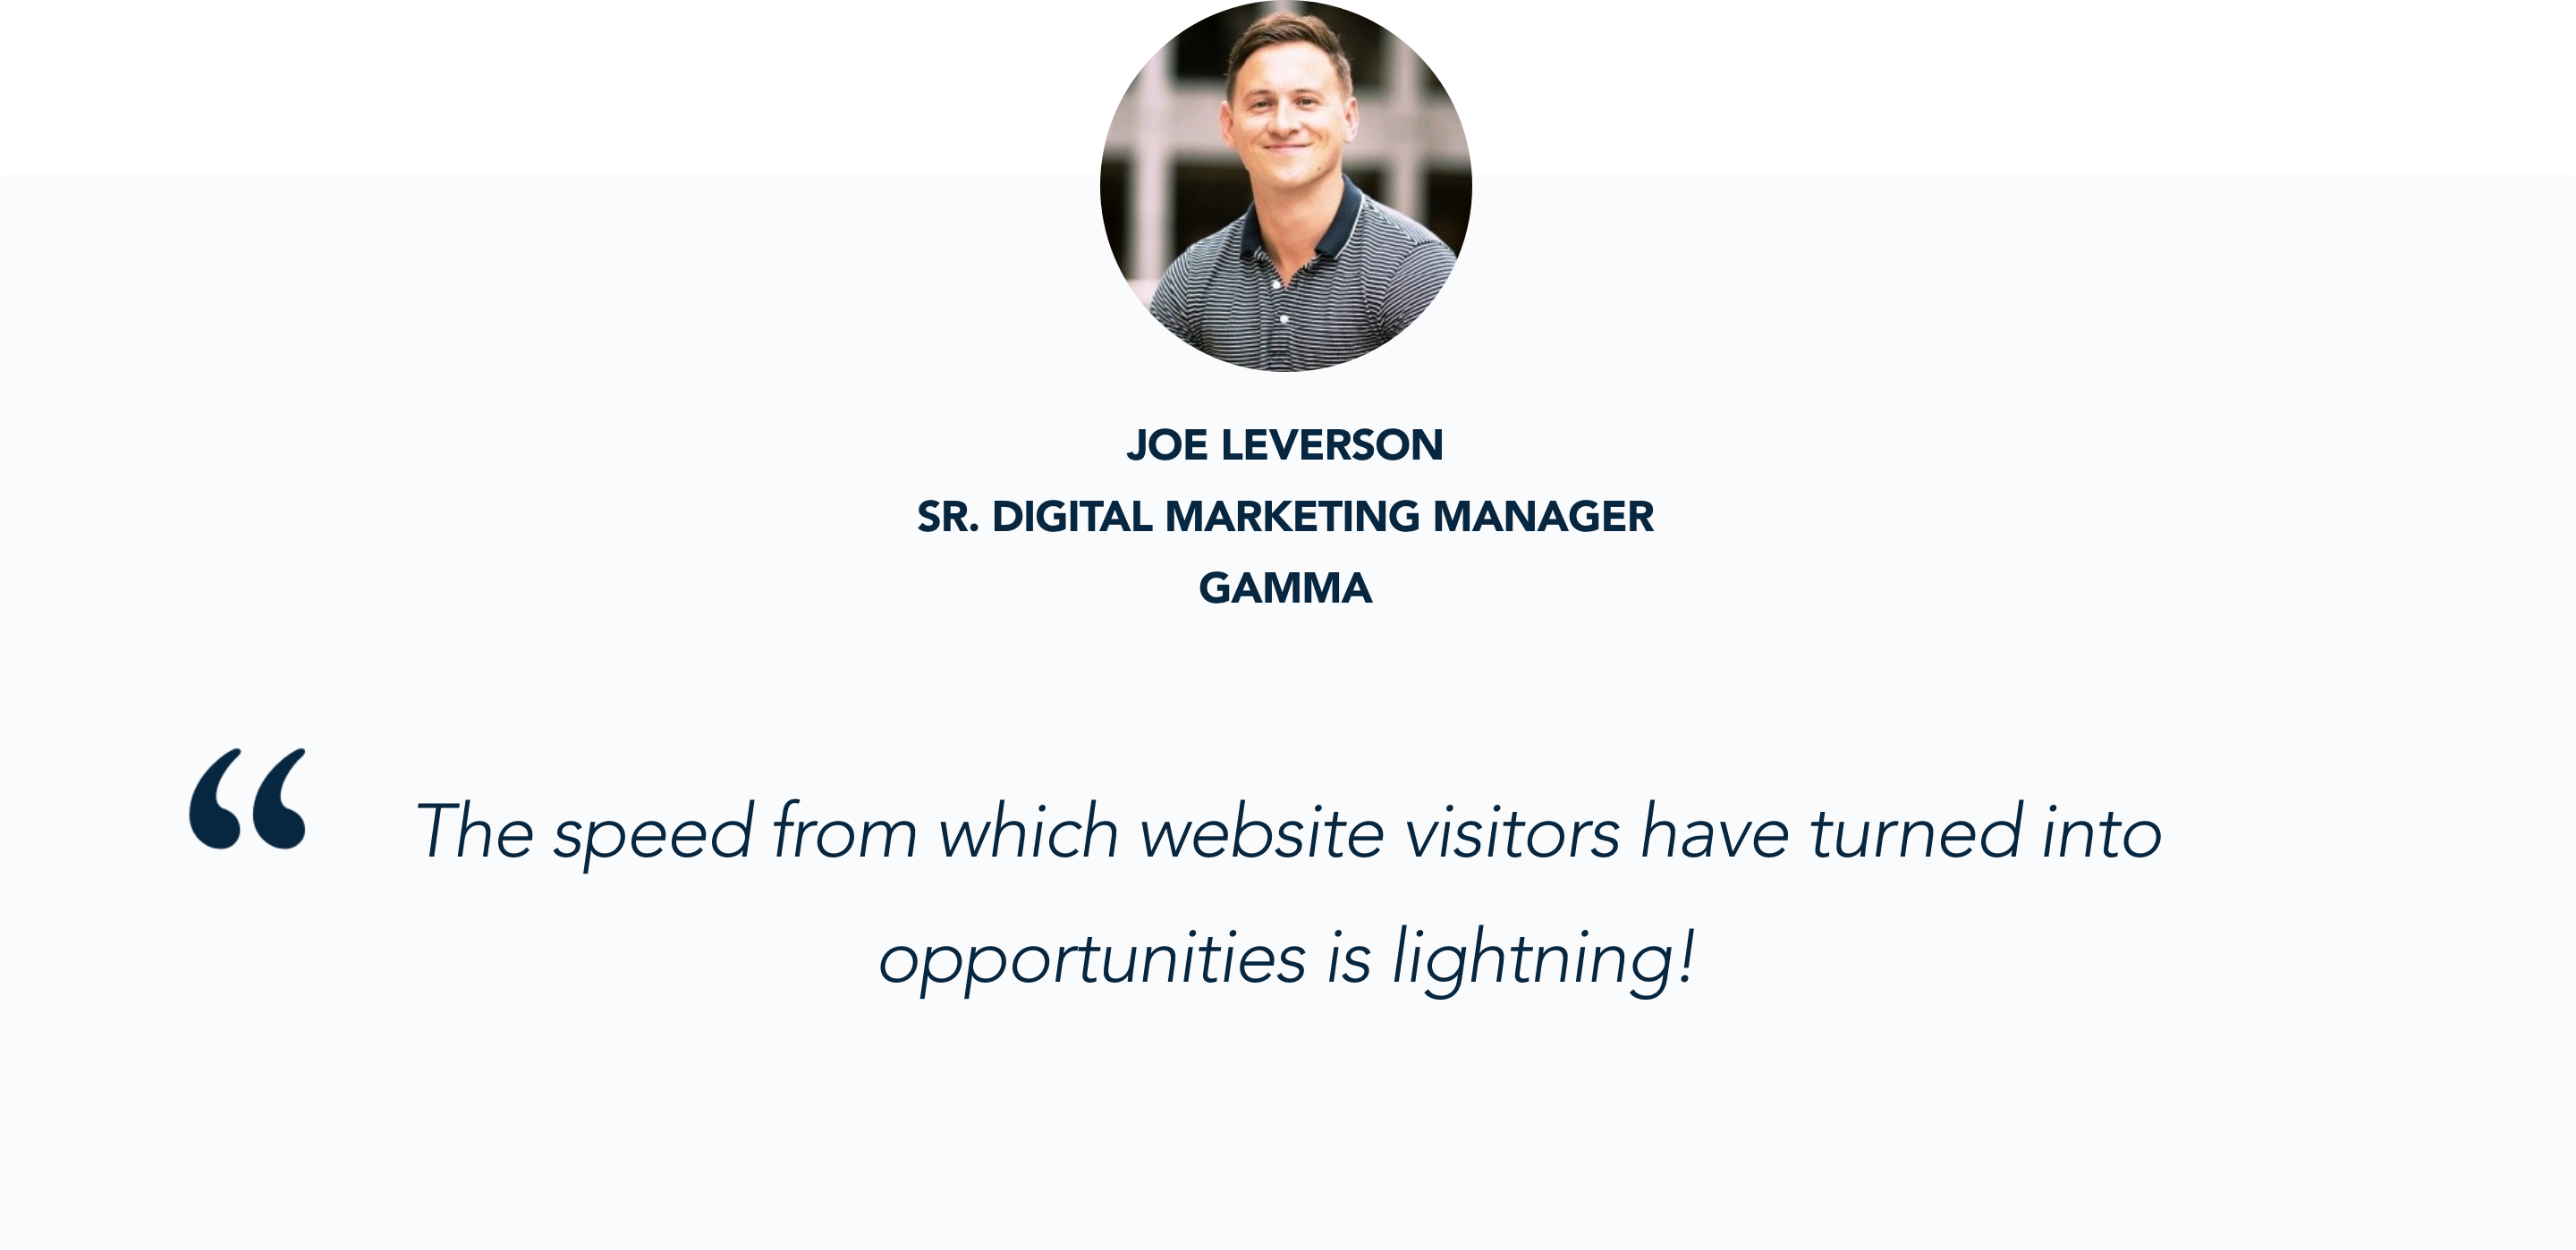 Joe Leverson shares his experience with Qualified's Conversational Marketing solution